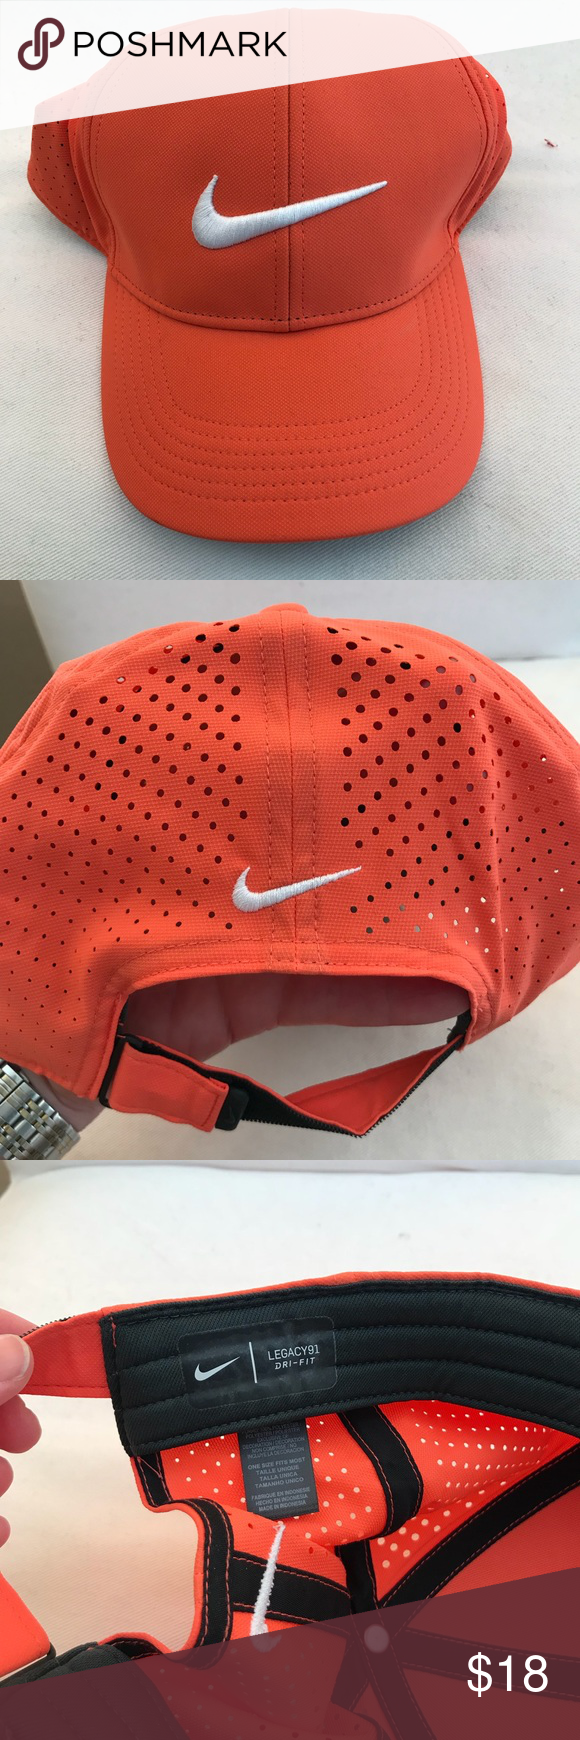 Nike Legacy 91 Perforated Adjustable Golf Hat The Nike Legacy 91 Perforated  Adjustable Golf Hat in 6a9aad290c94